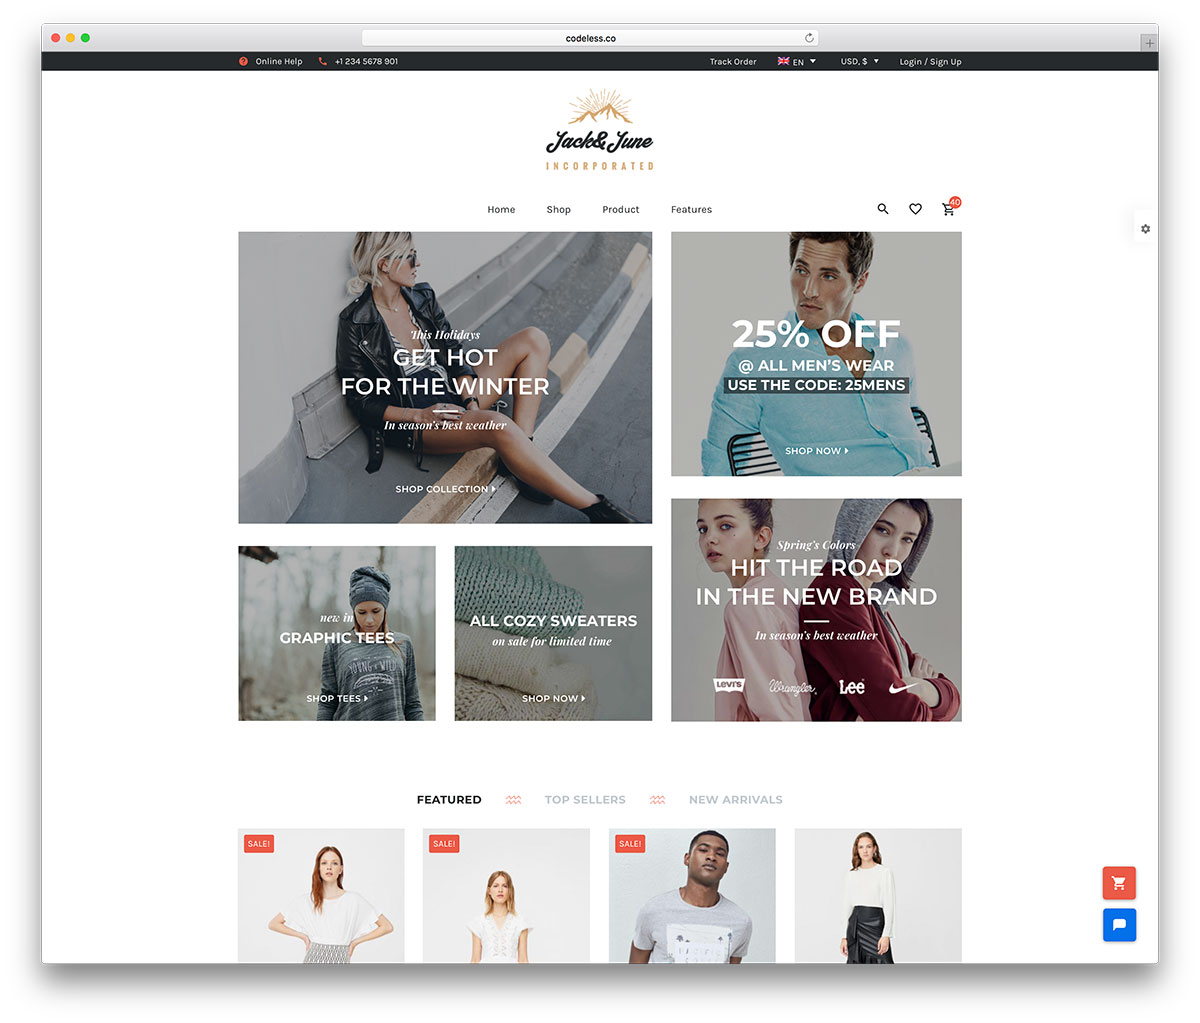 30 Clean and Simple WordPress Themes 2018 - Colorlib